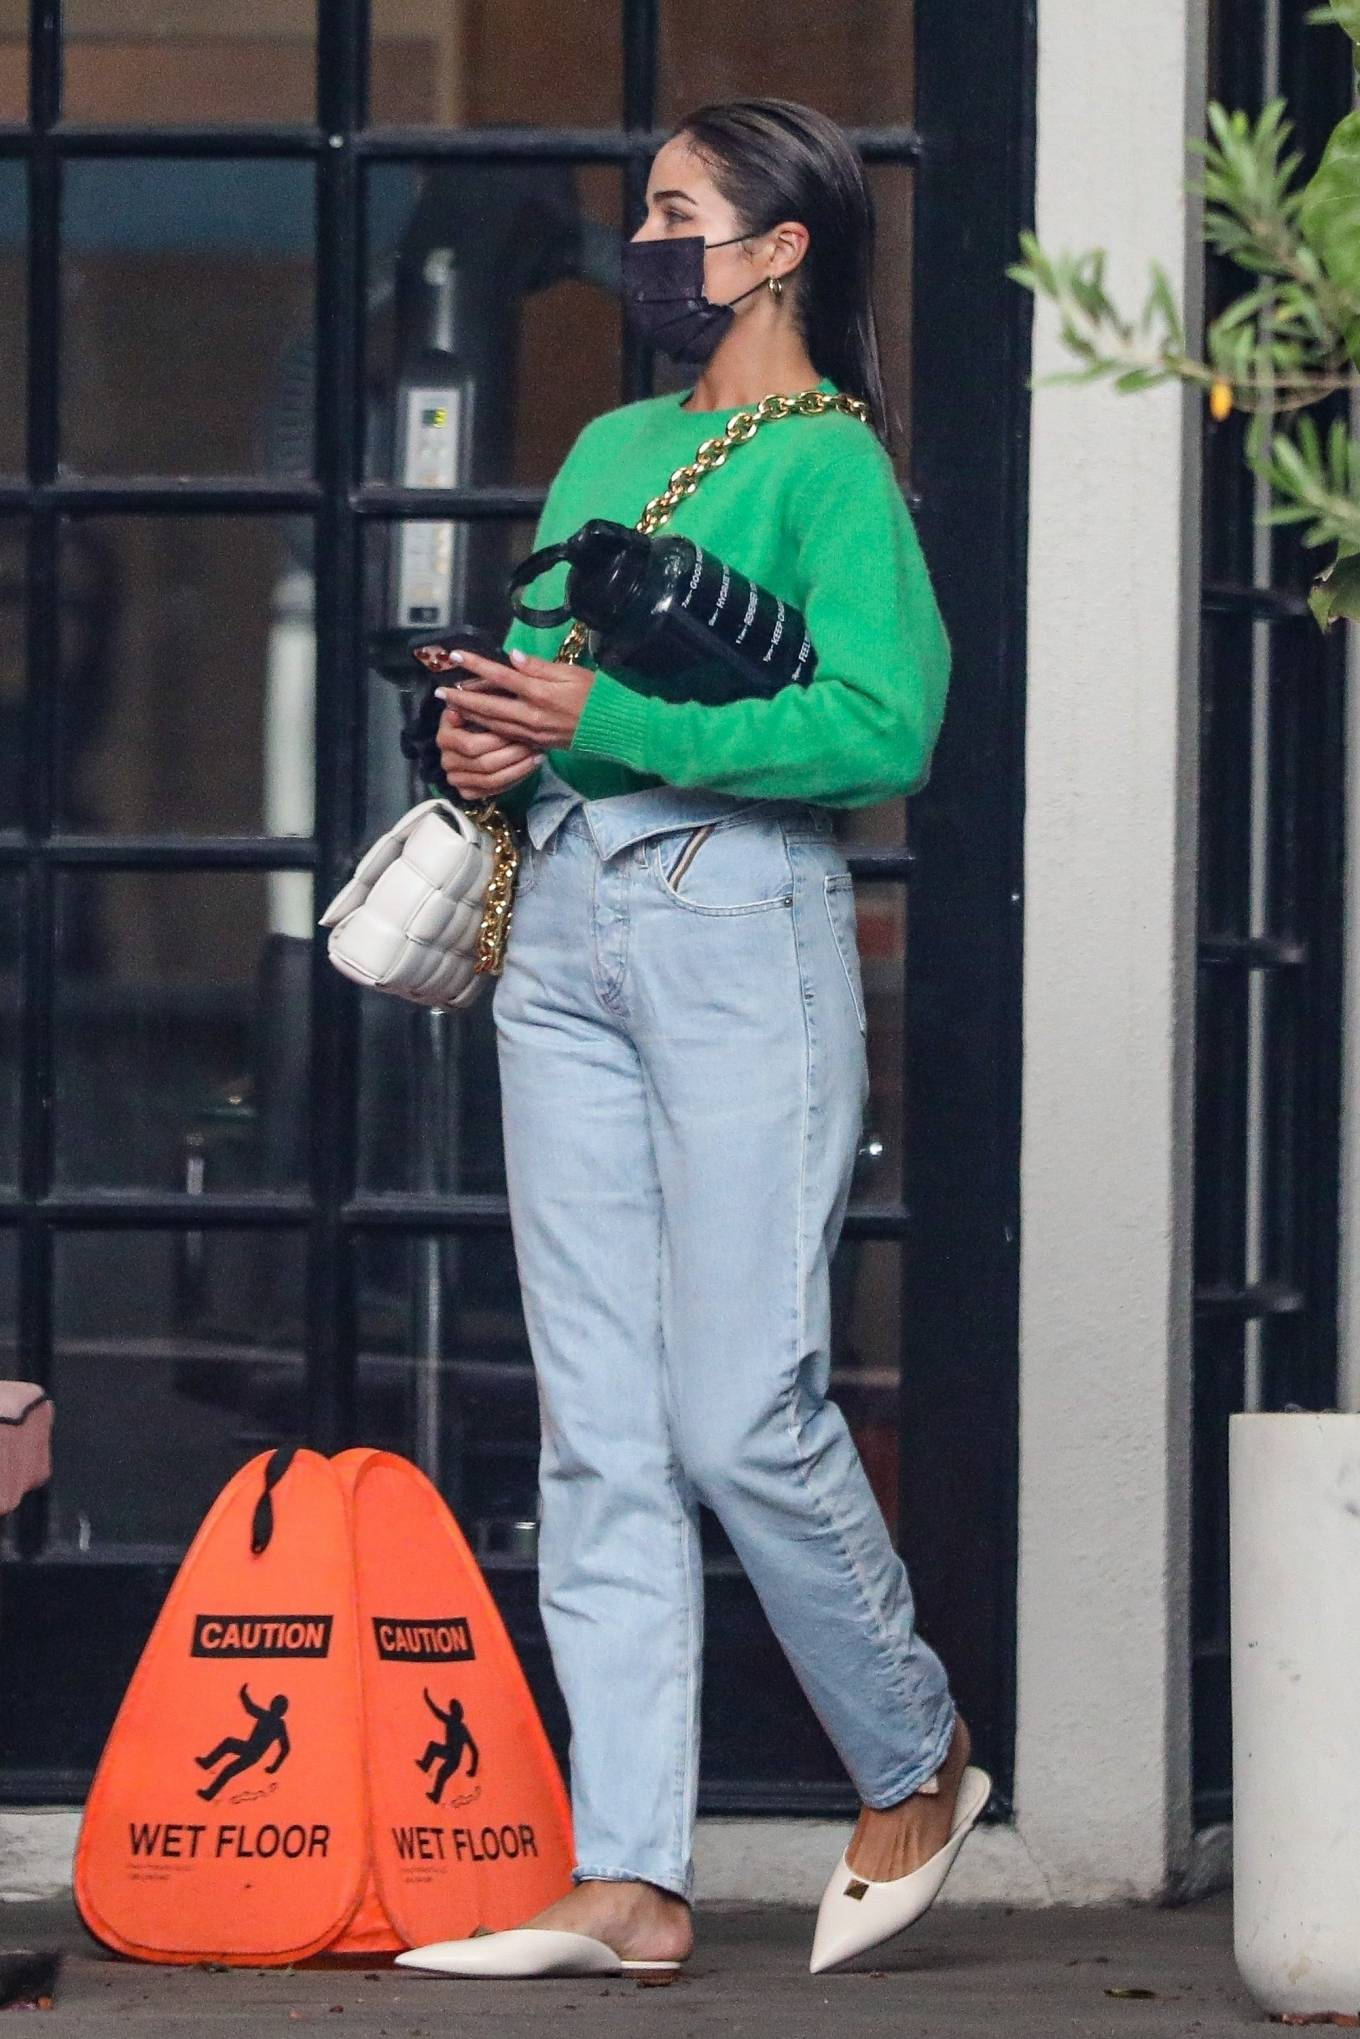 Olivia Culpo wearing a oversized green sweatshirt with full sleeves and a crew neck